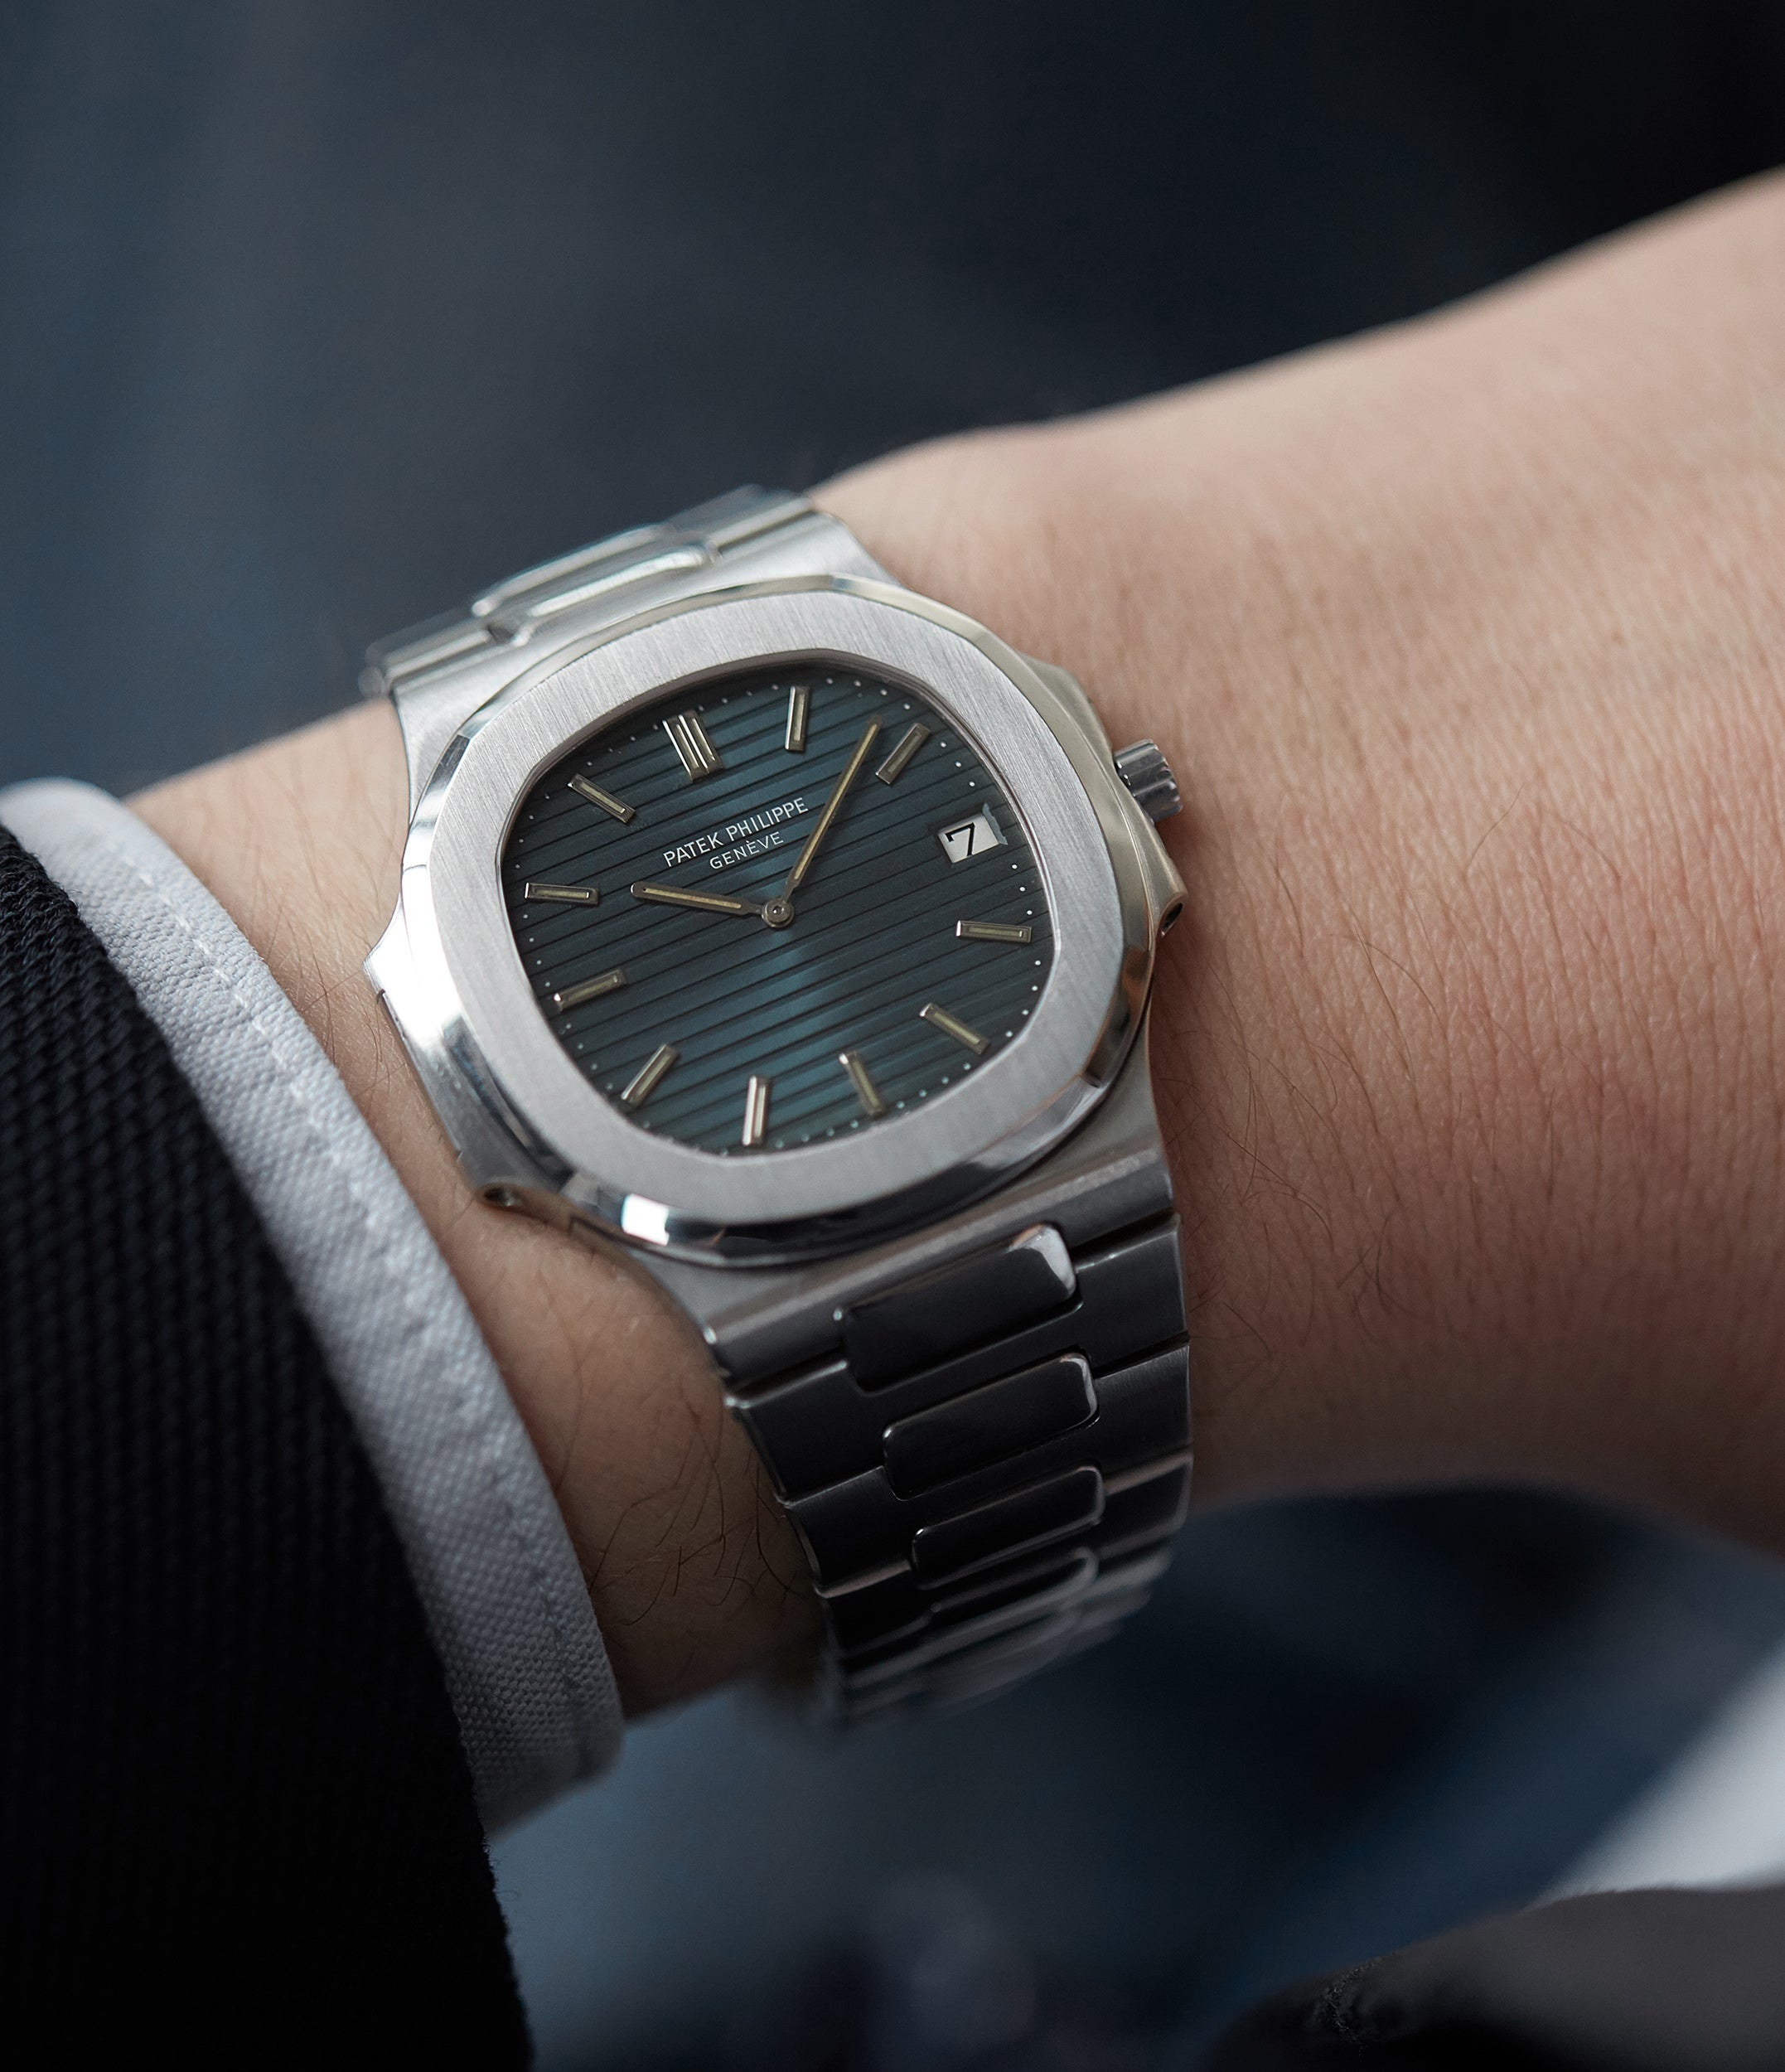 on the wrist Patek Philippe Nautilus 3700/001 full set vintage watch for sale online at A Collected Man London UK specialist of rare watches